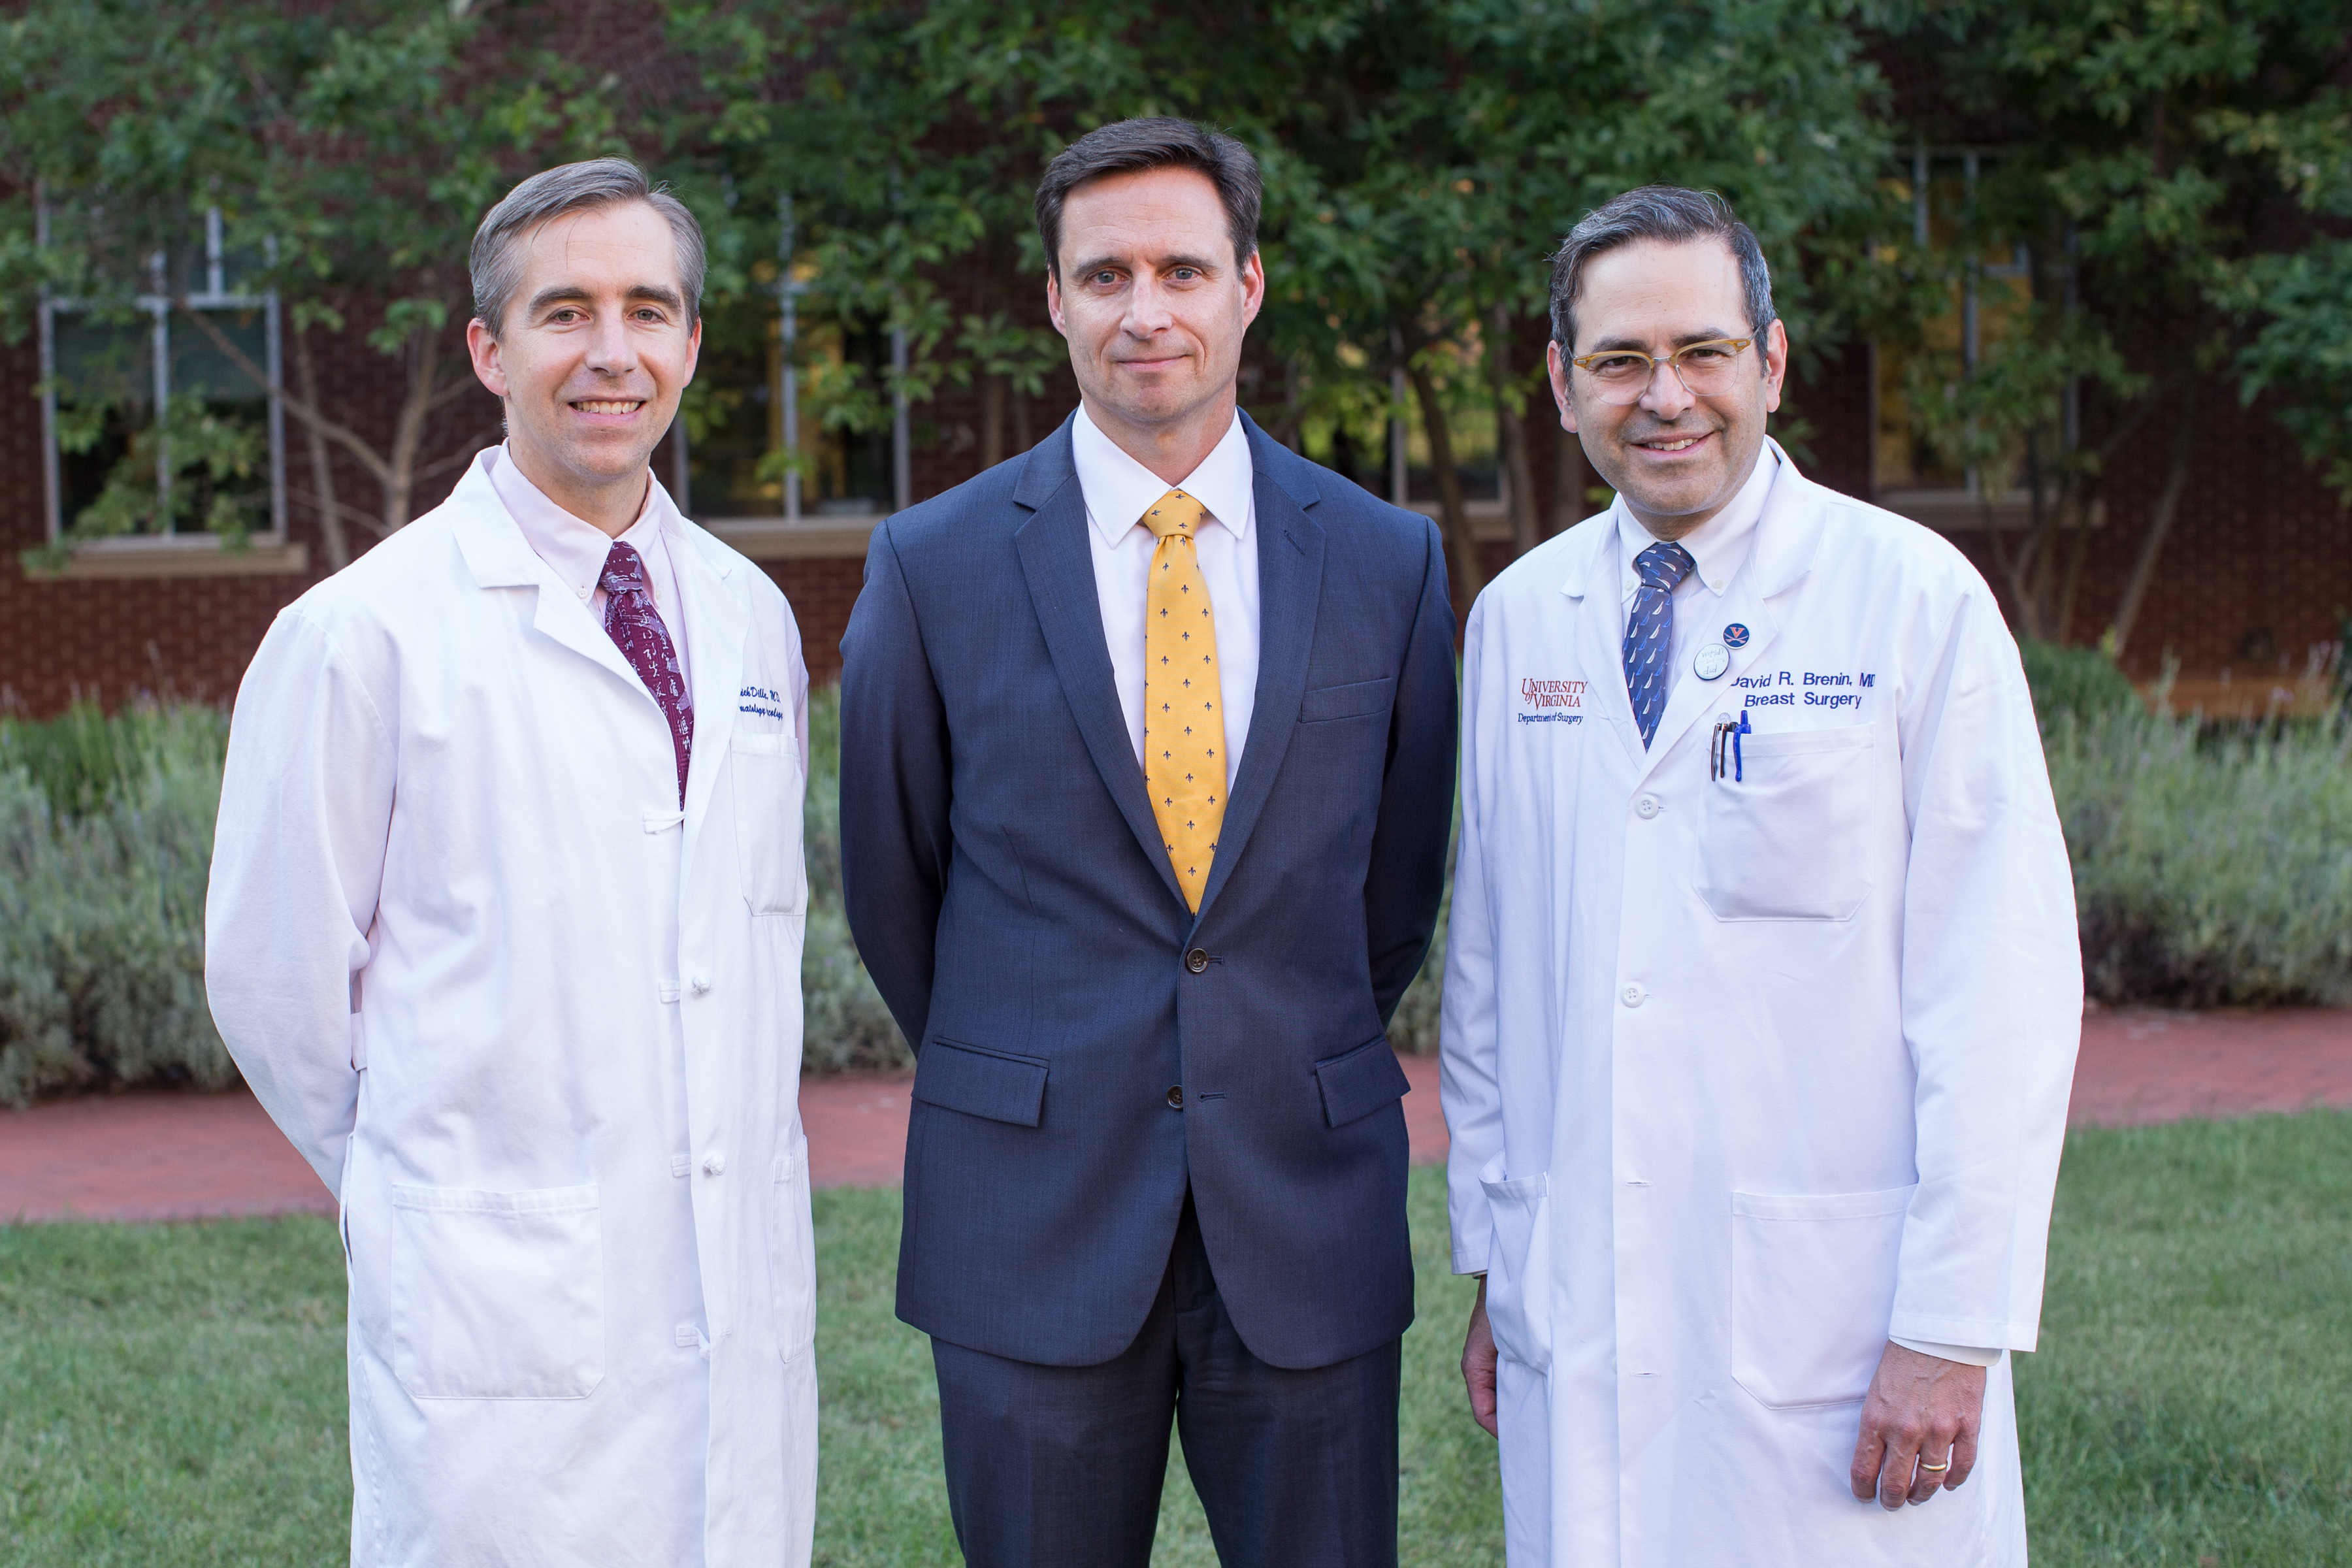 From left to right: Patrick Dillon, MD, Richard Price, PhD, and David Brenin, MD